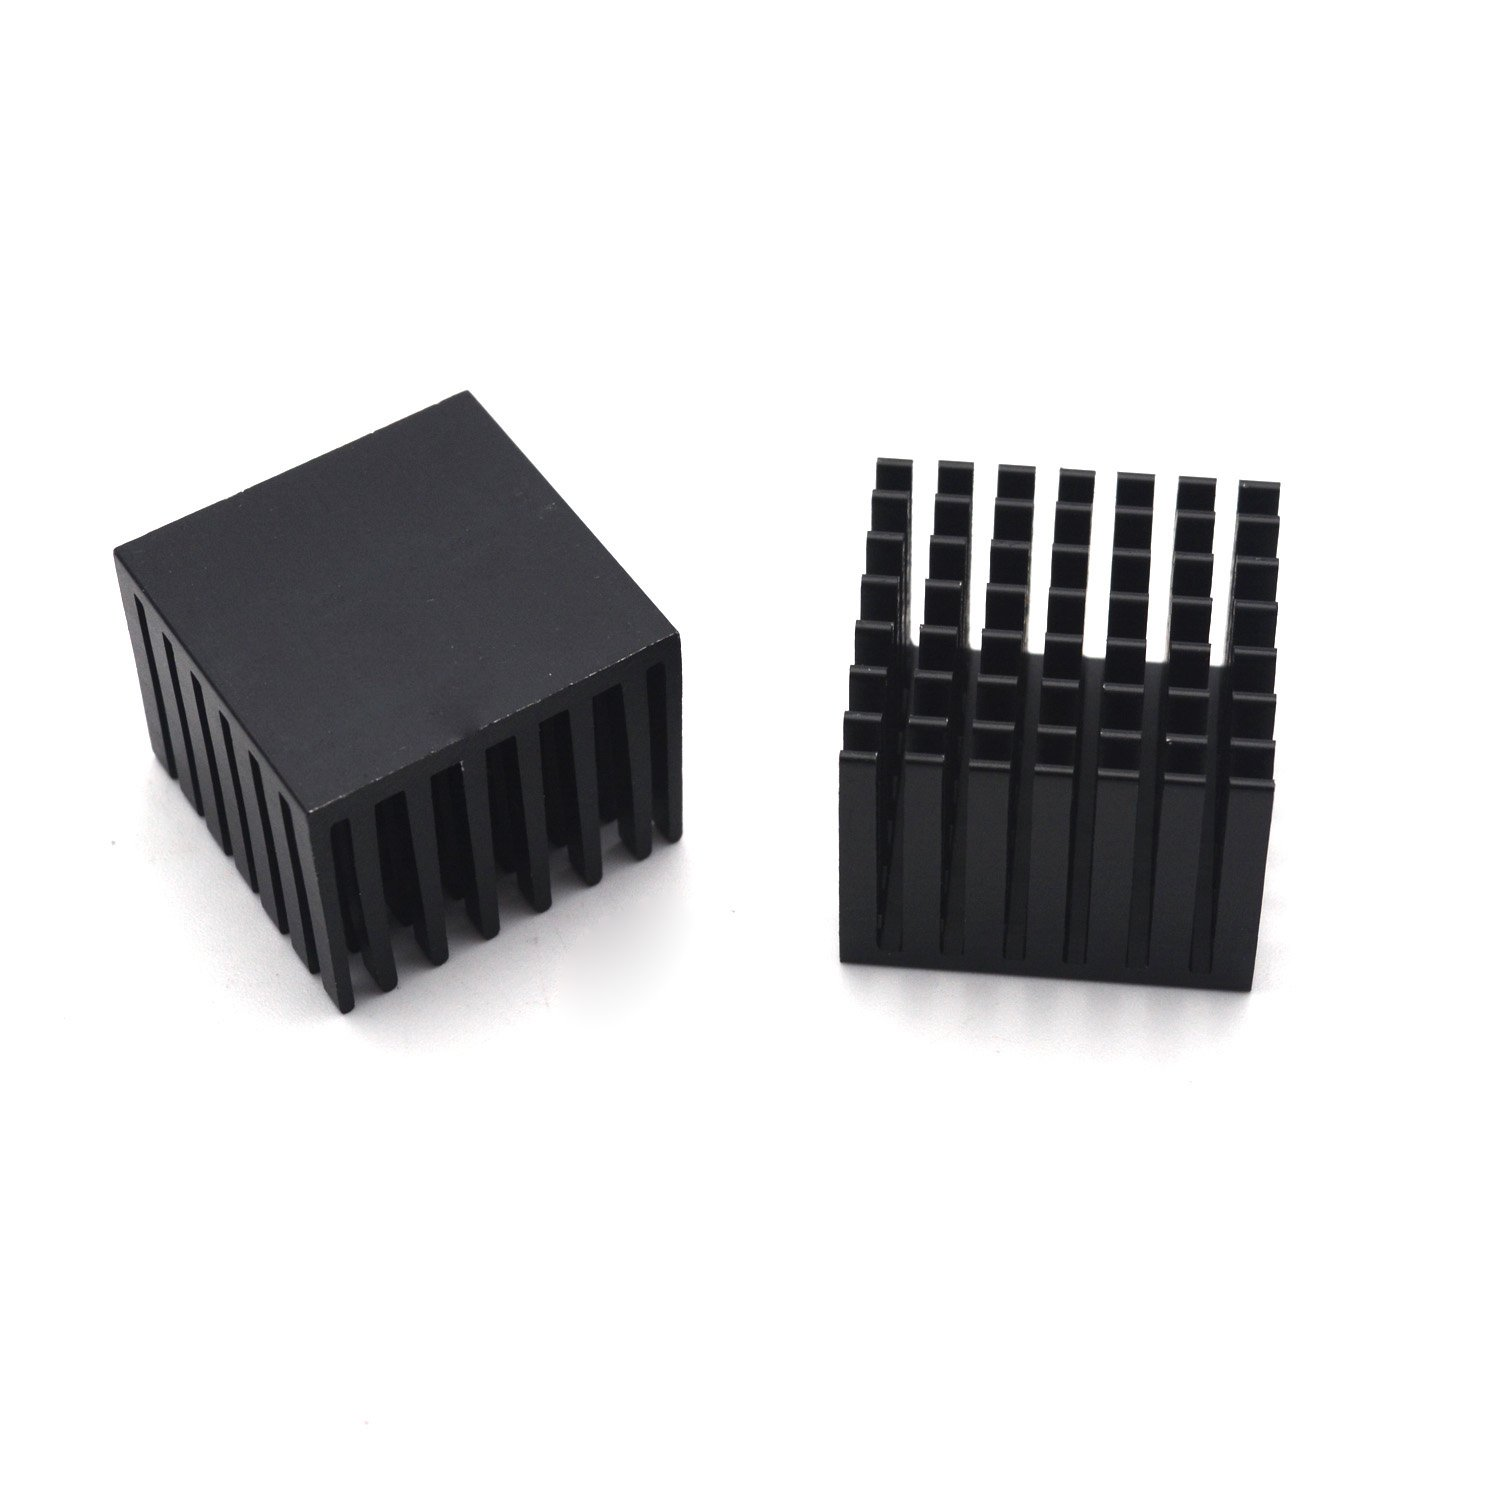 Antrader 6pcs 28 x 28 x 20mm Aluminum Heatsink Cooling Fin Black by Antrader (Image #2)